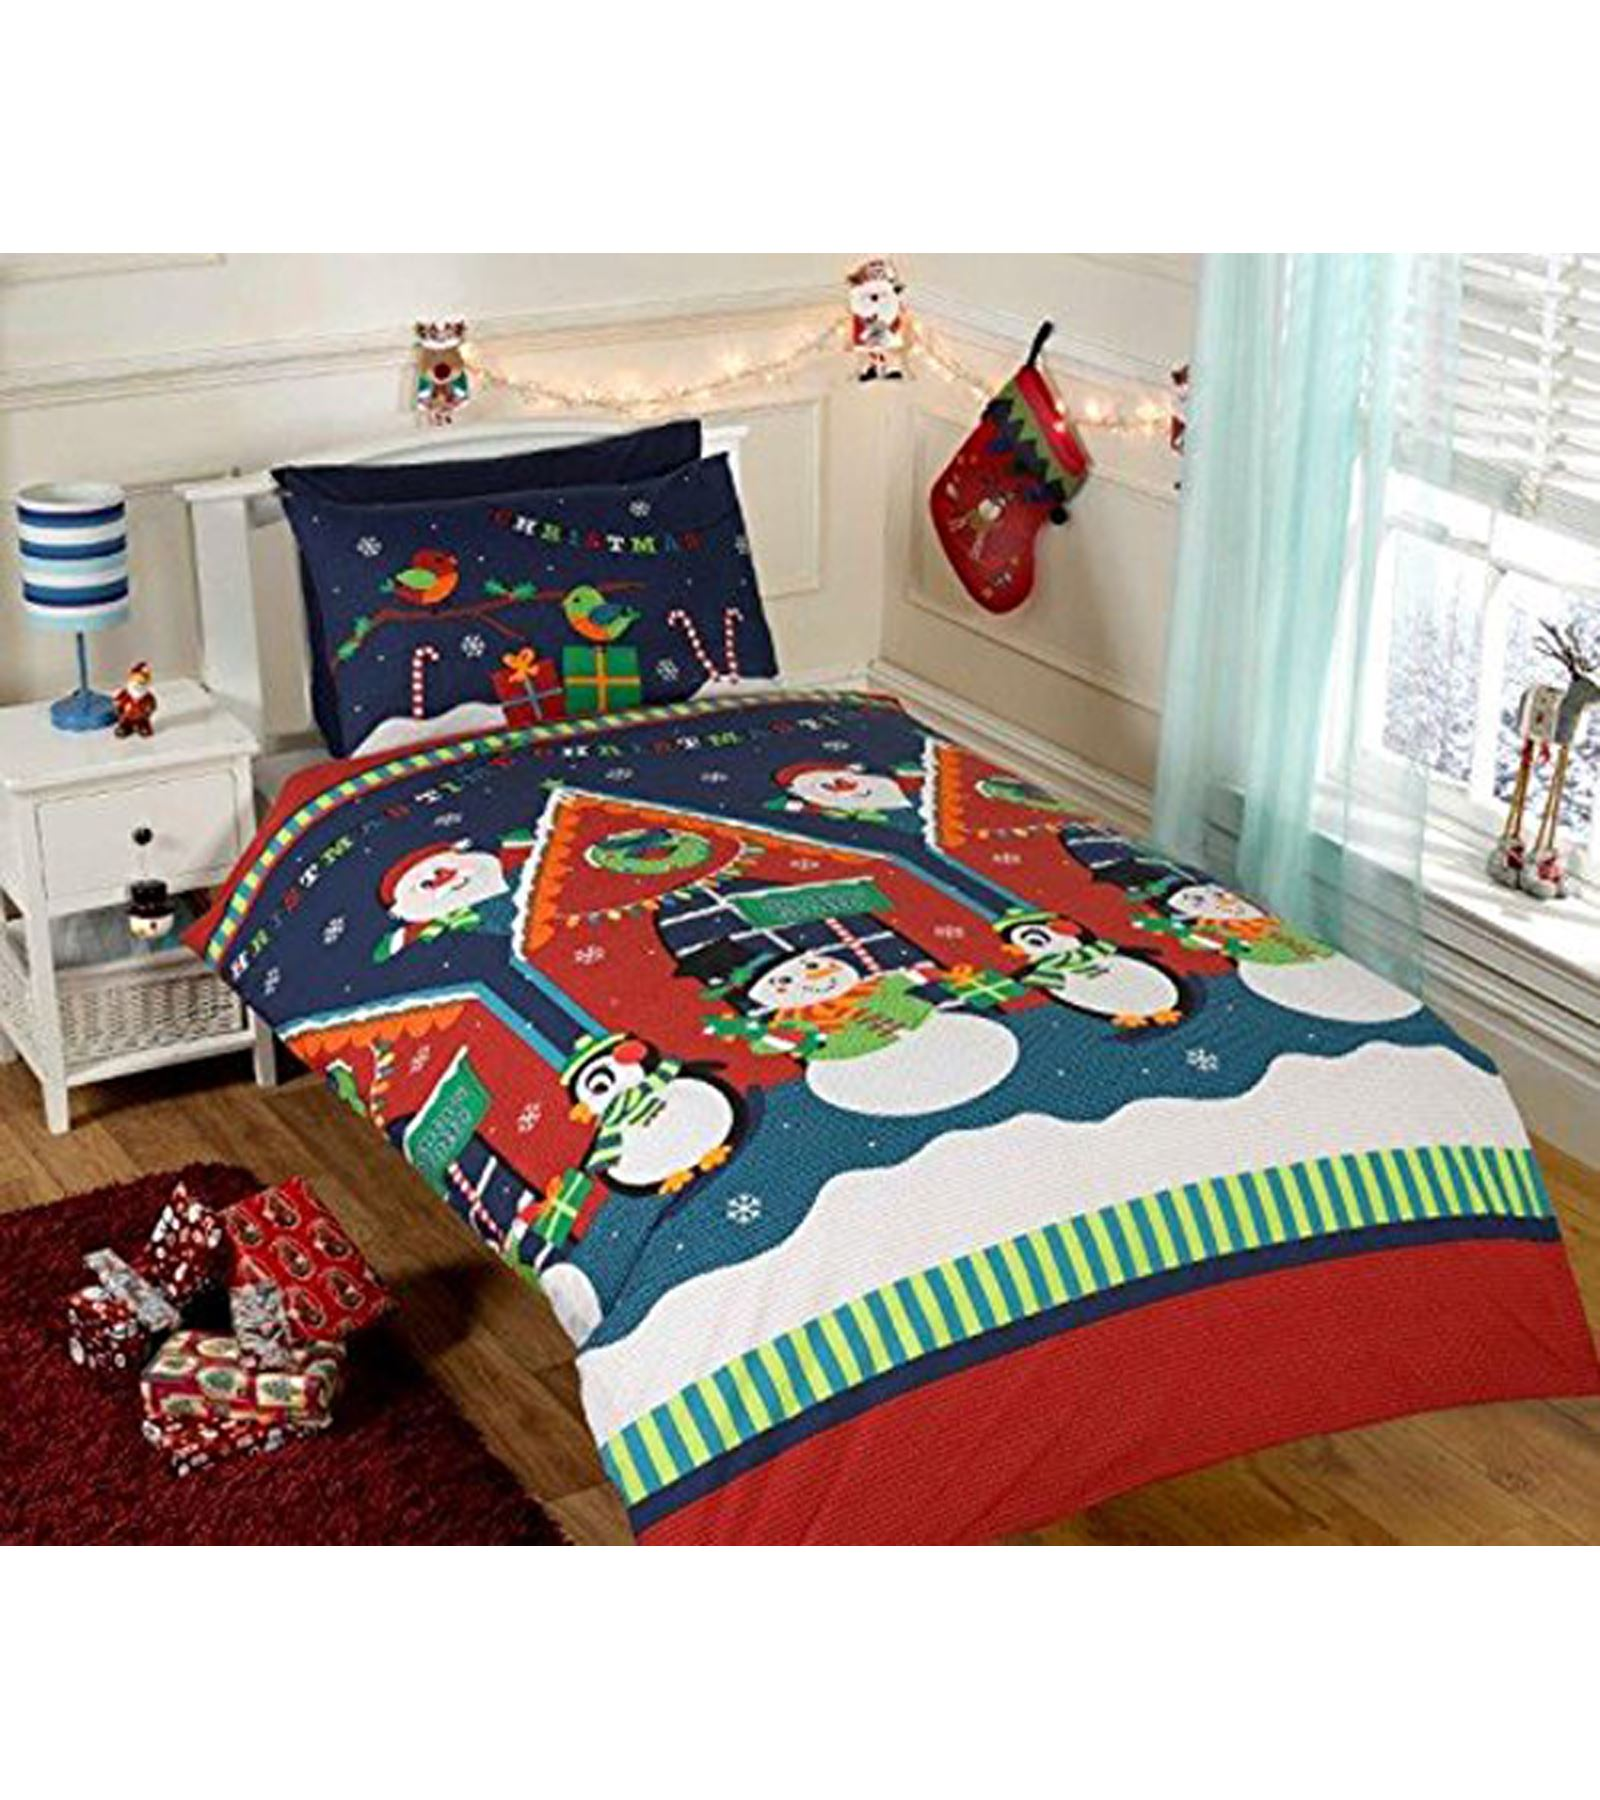 CHRISTMAS DUVET COVERS VARIOUS DESIGNS AVAILABLE IN SINGLE ...